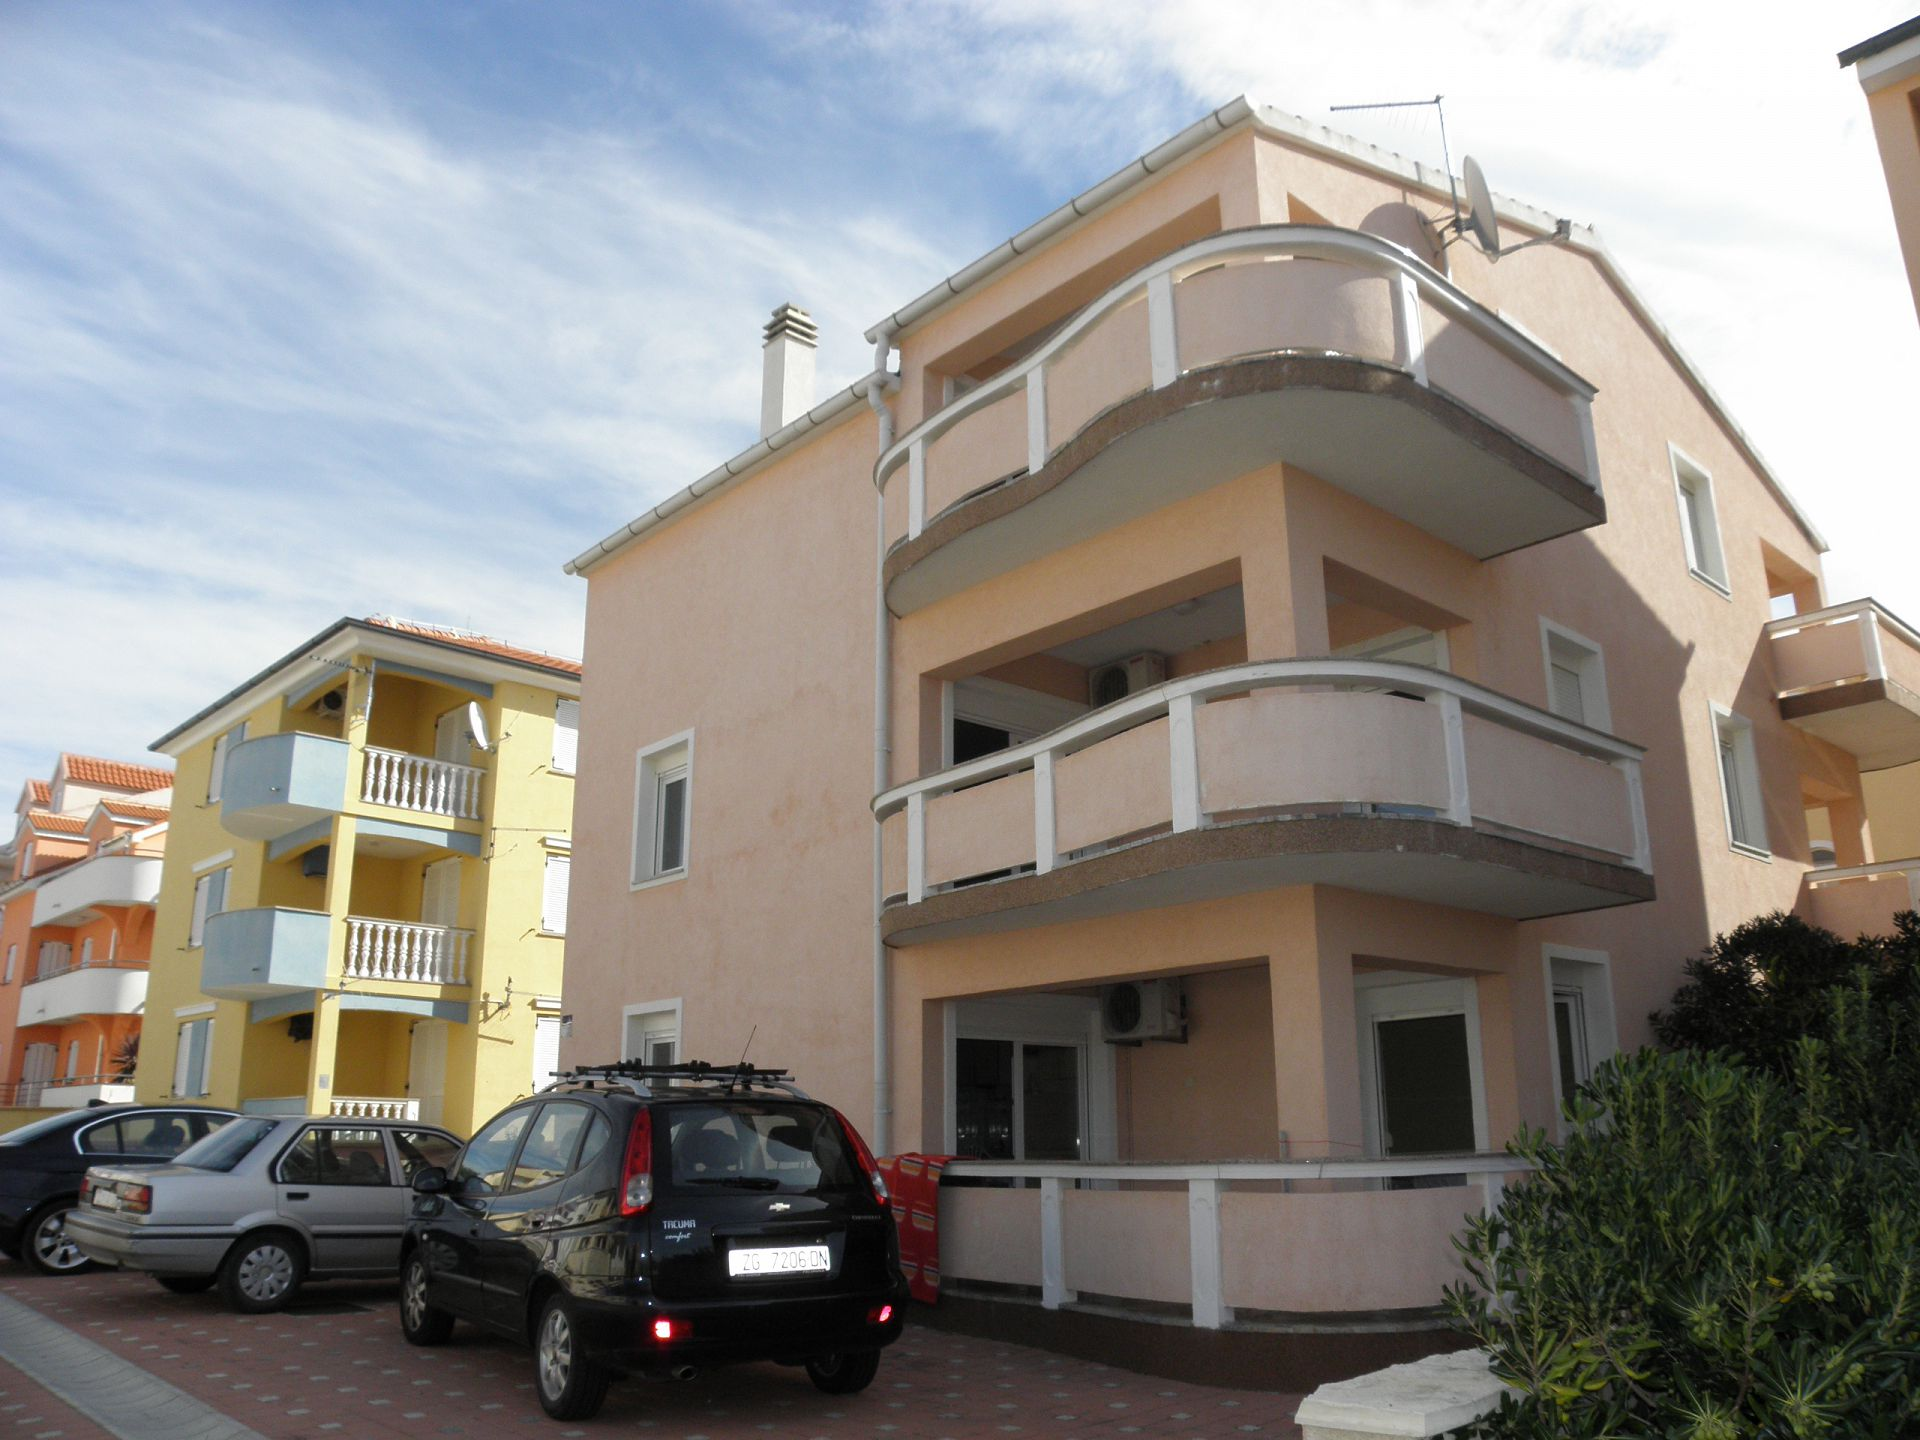 2723 - Povljana - Apartments Croatia